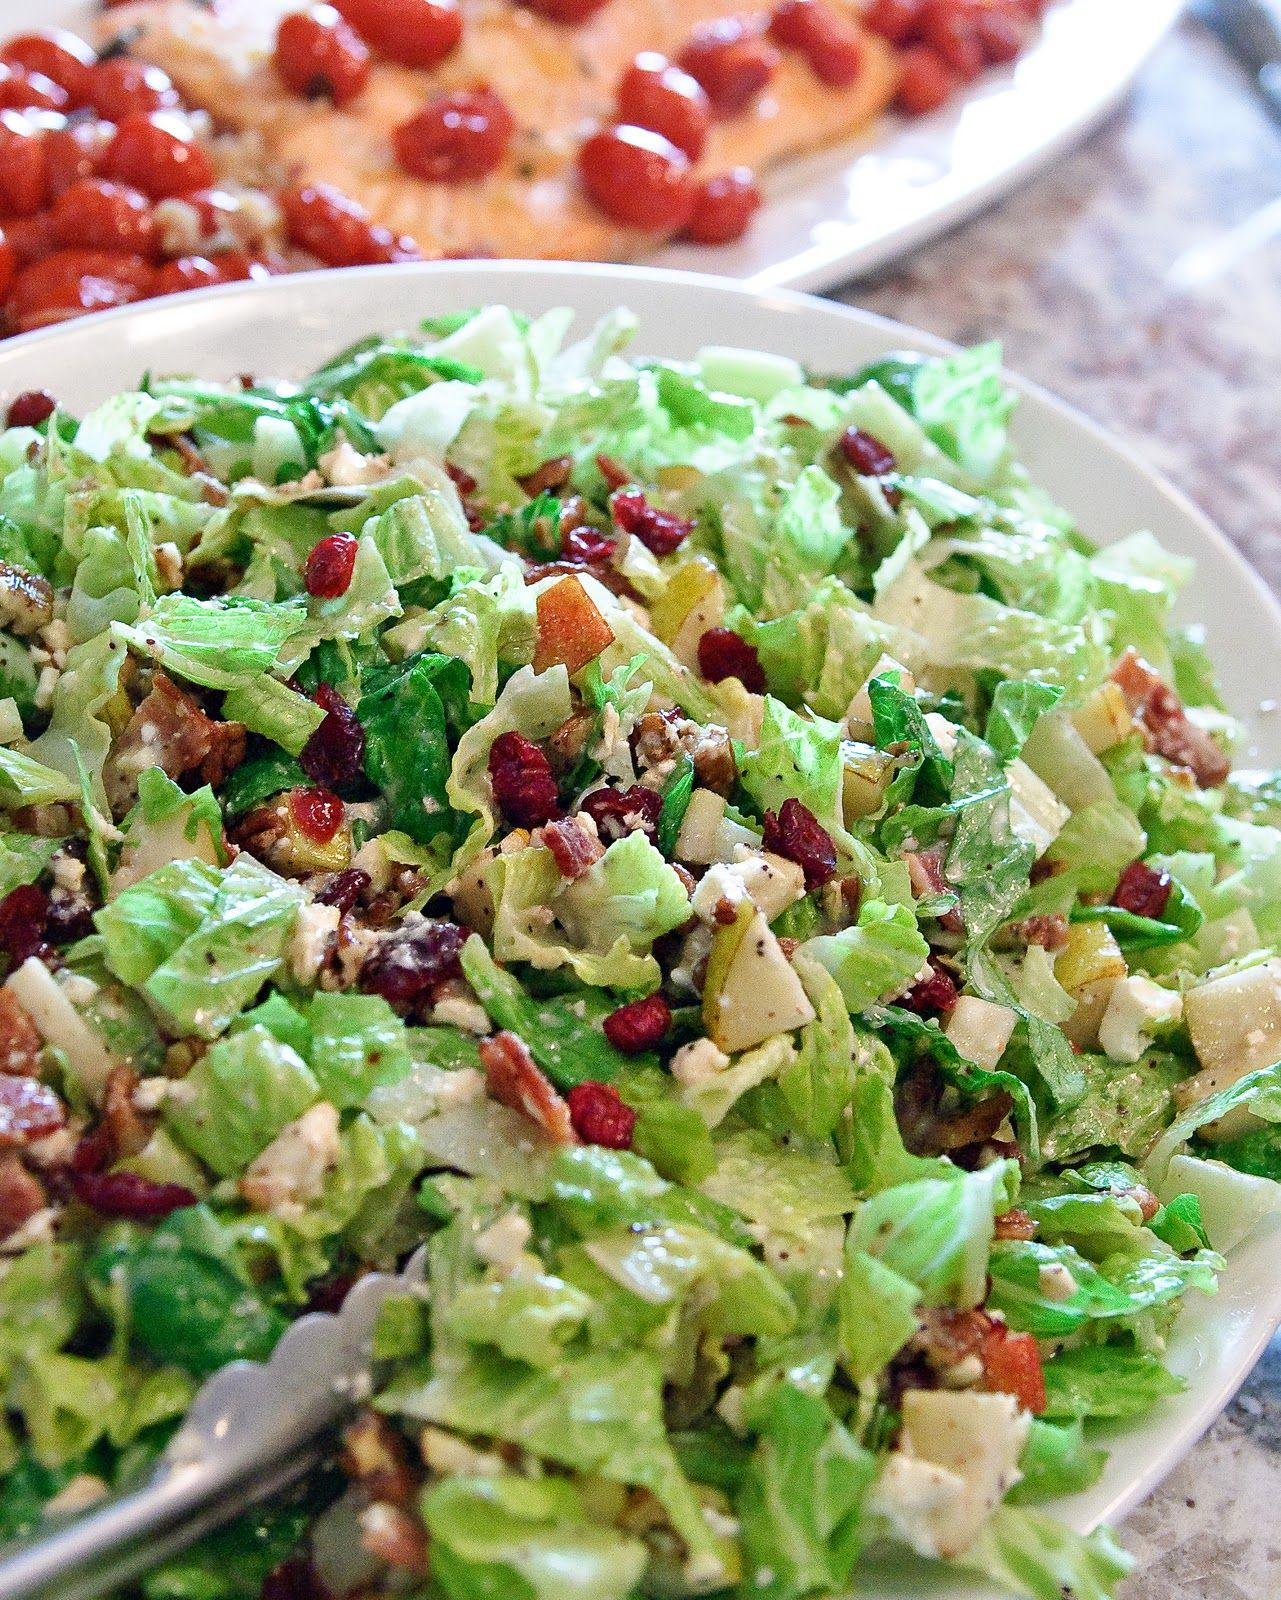 Chopped Salad to DIE for! With pears, cranberries, pecans, bacon, feta cheese, romaine … YumO!